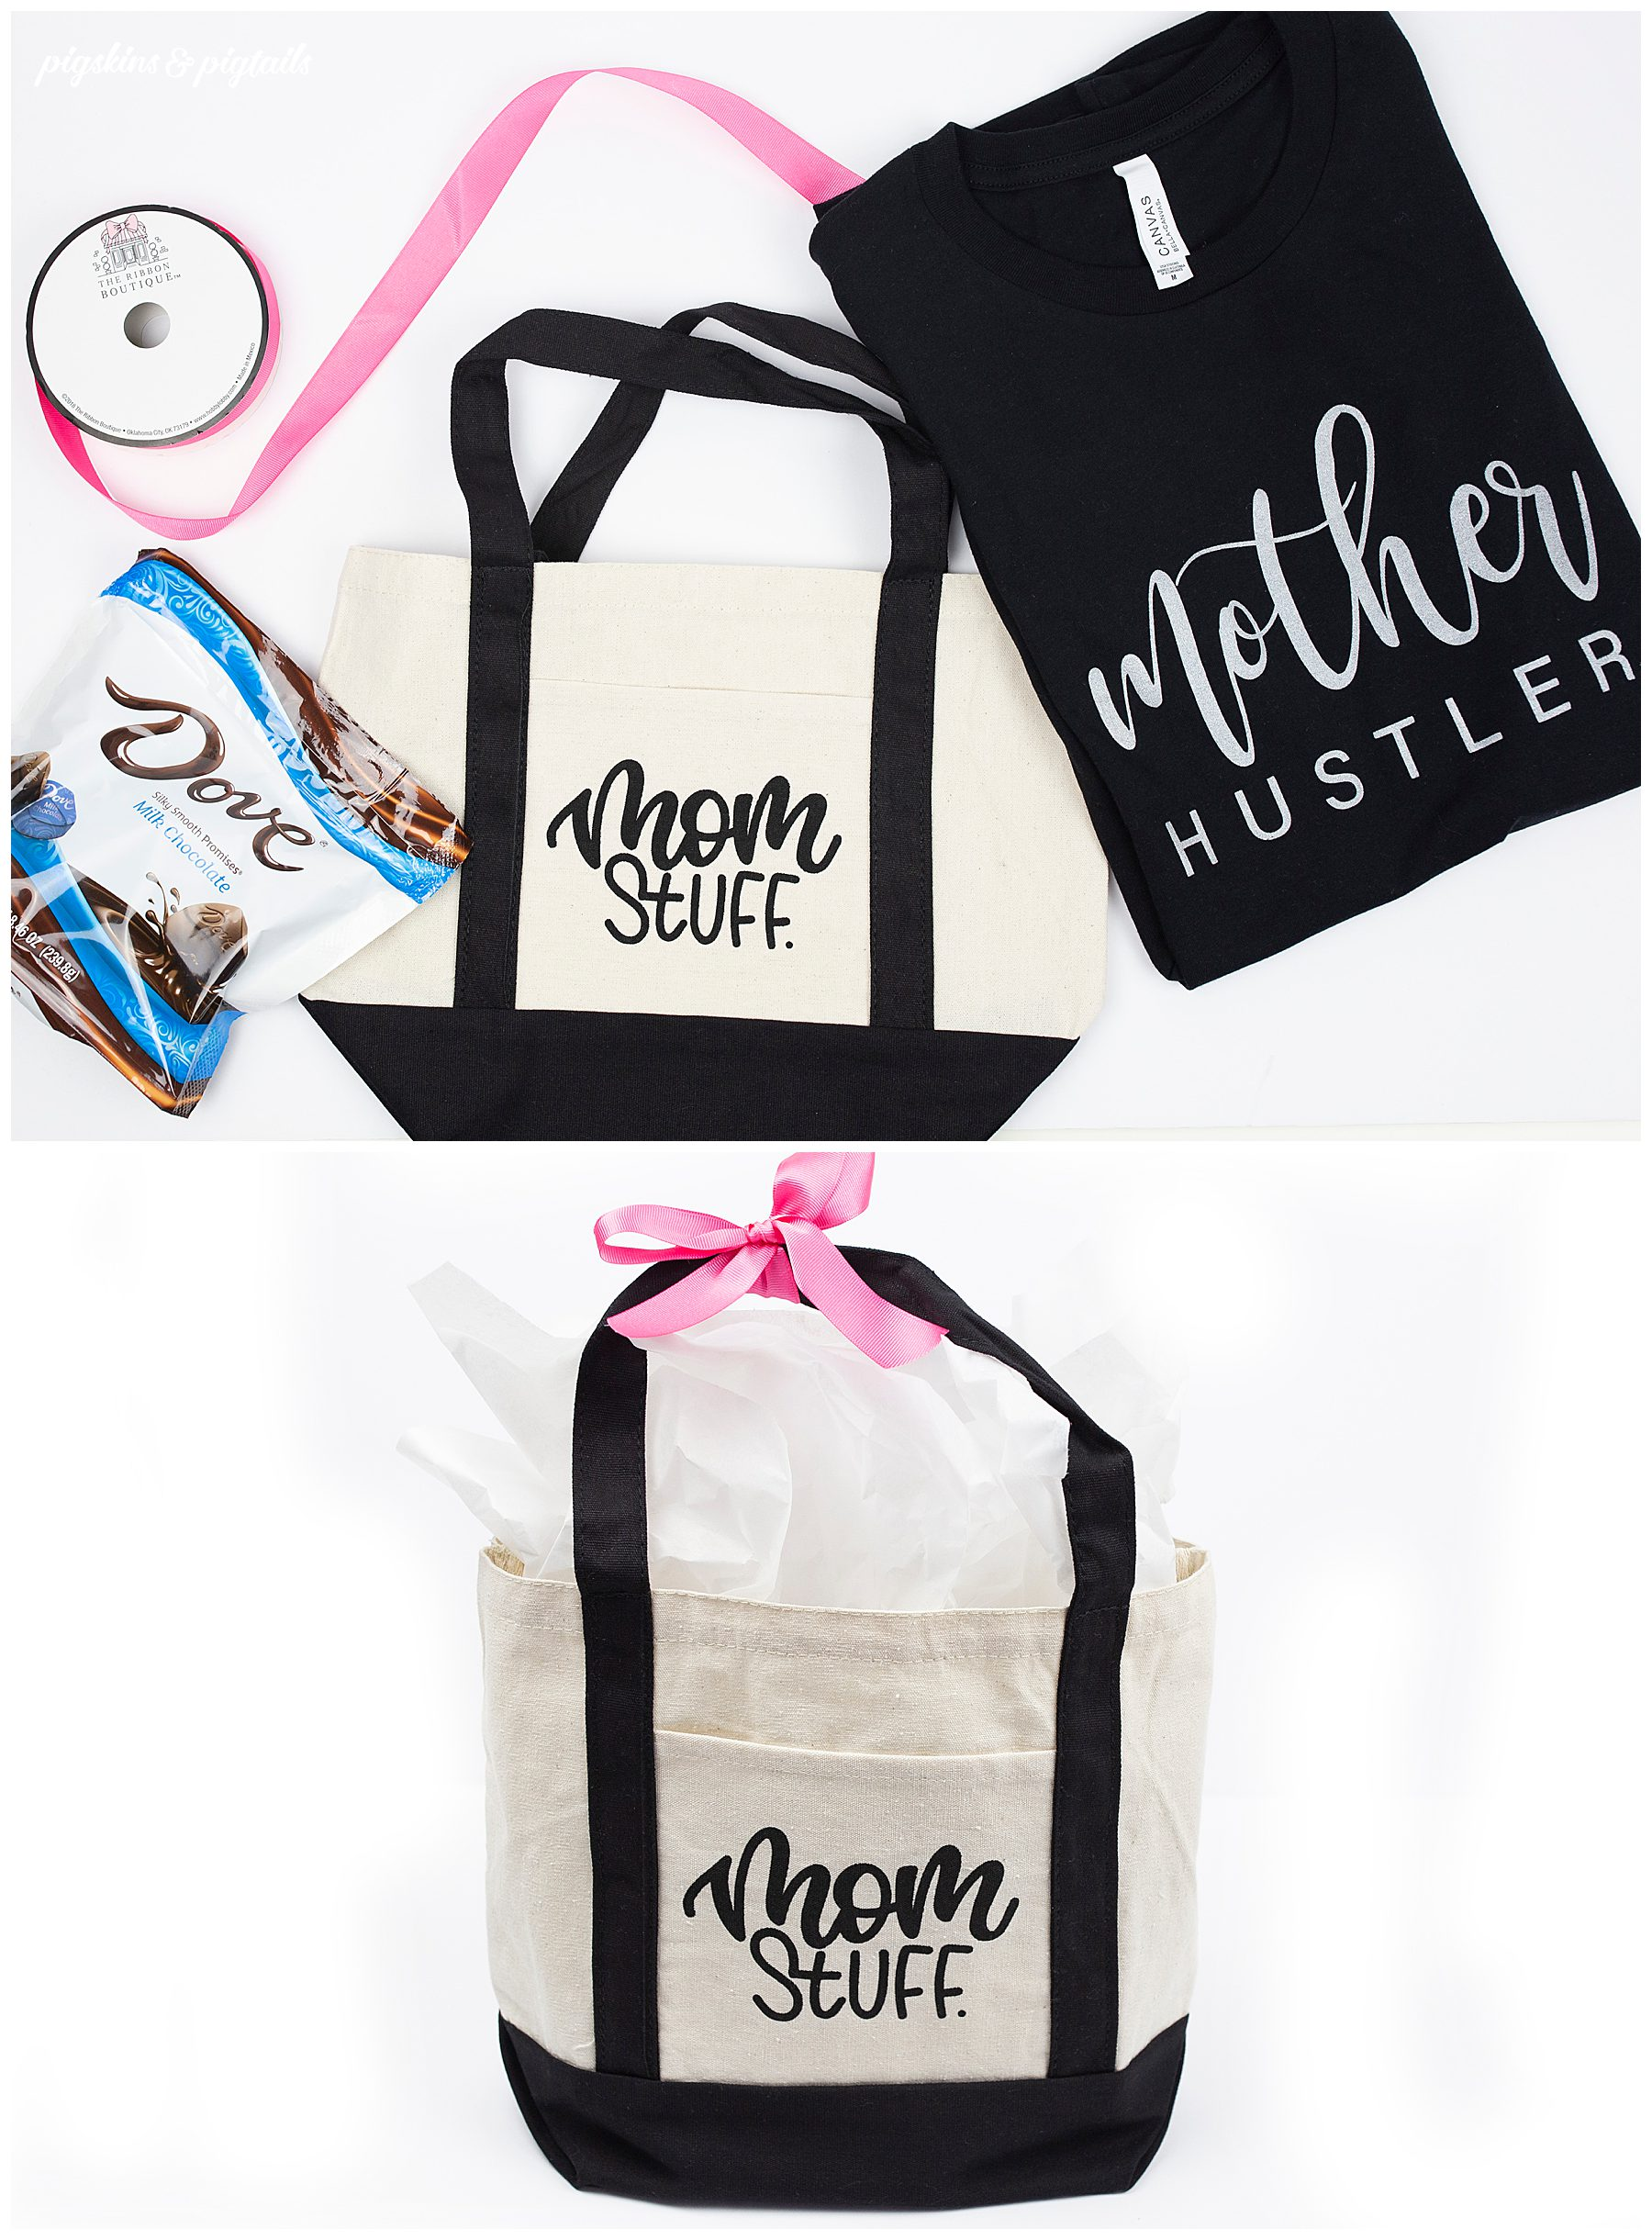 diy screen printing project gift idea